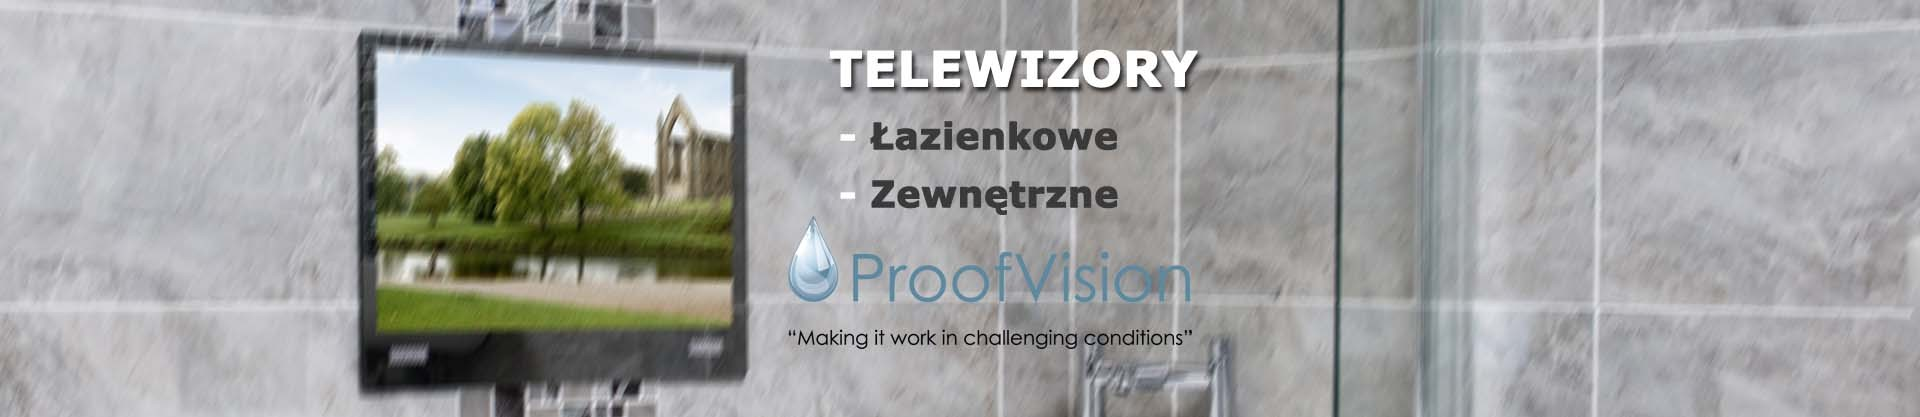 ProofVision Telewizory